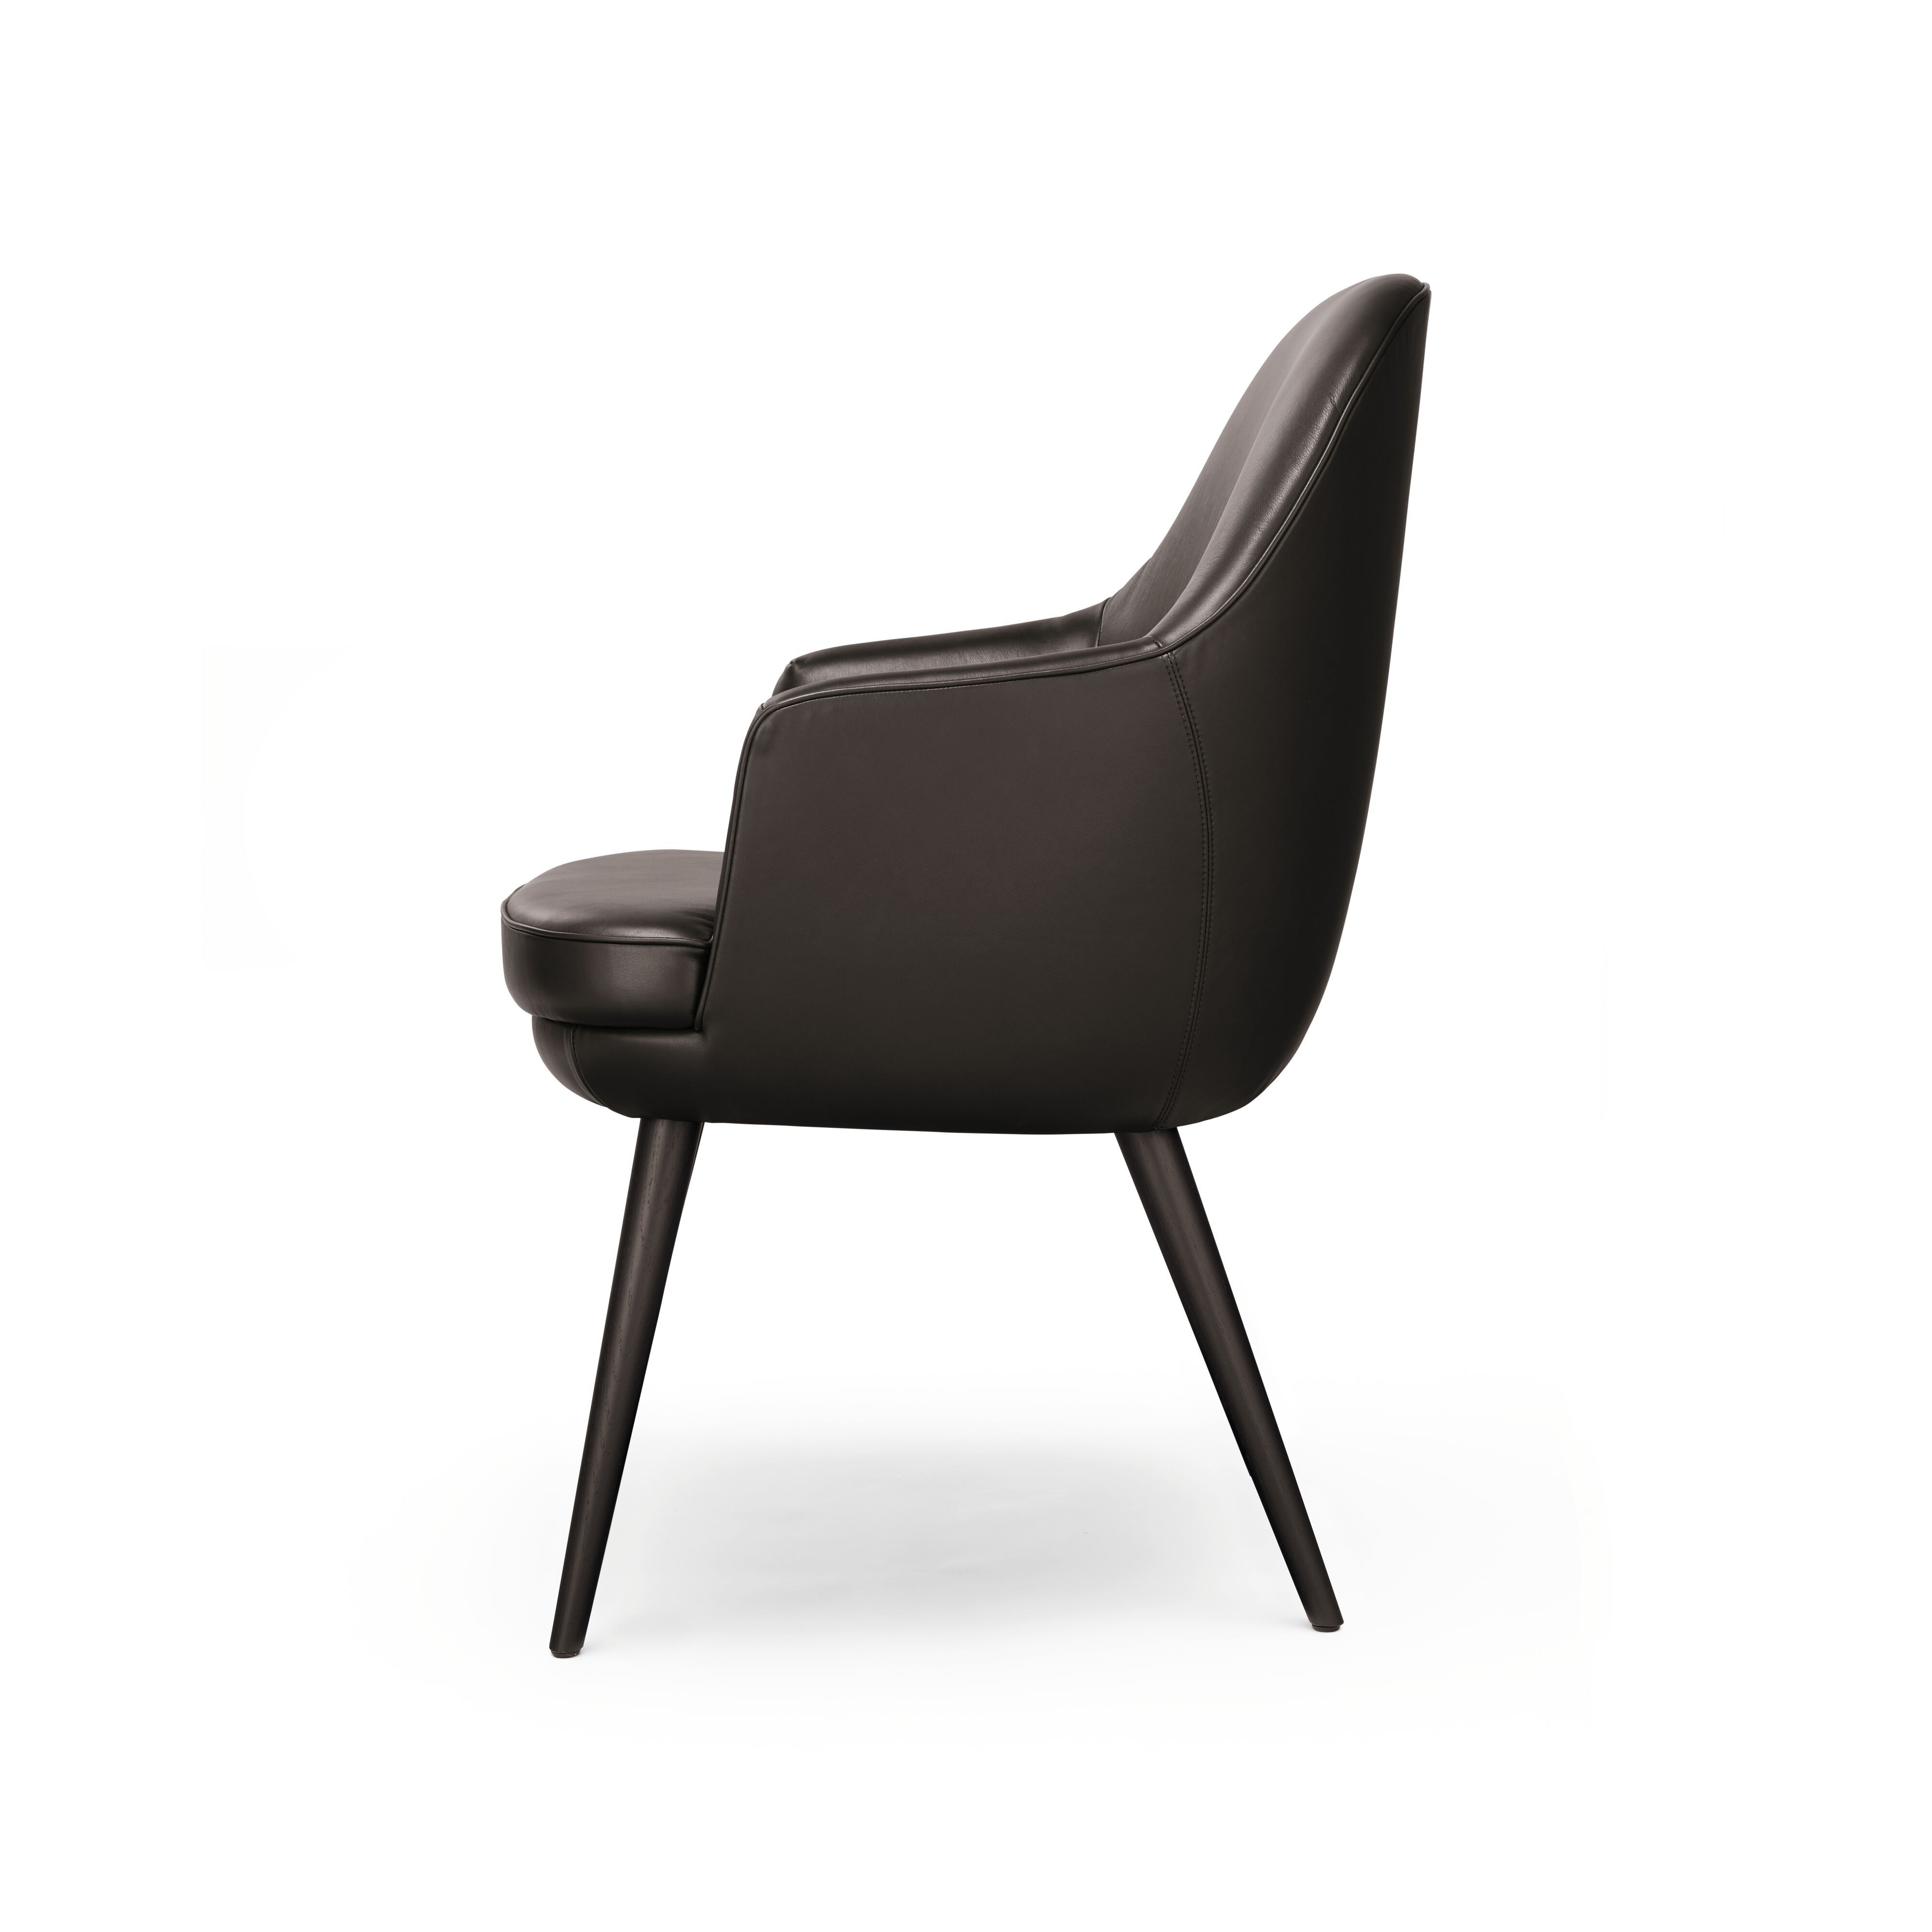 13_WK-375_Chair-Modell-1376-Dining-Chair-0013-H.tif